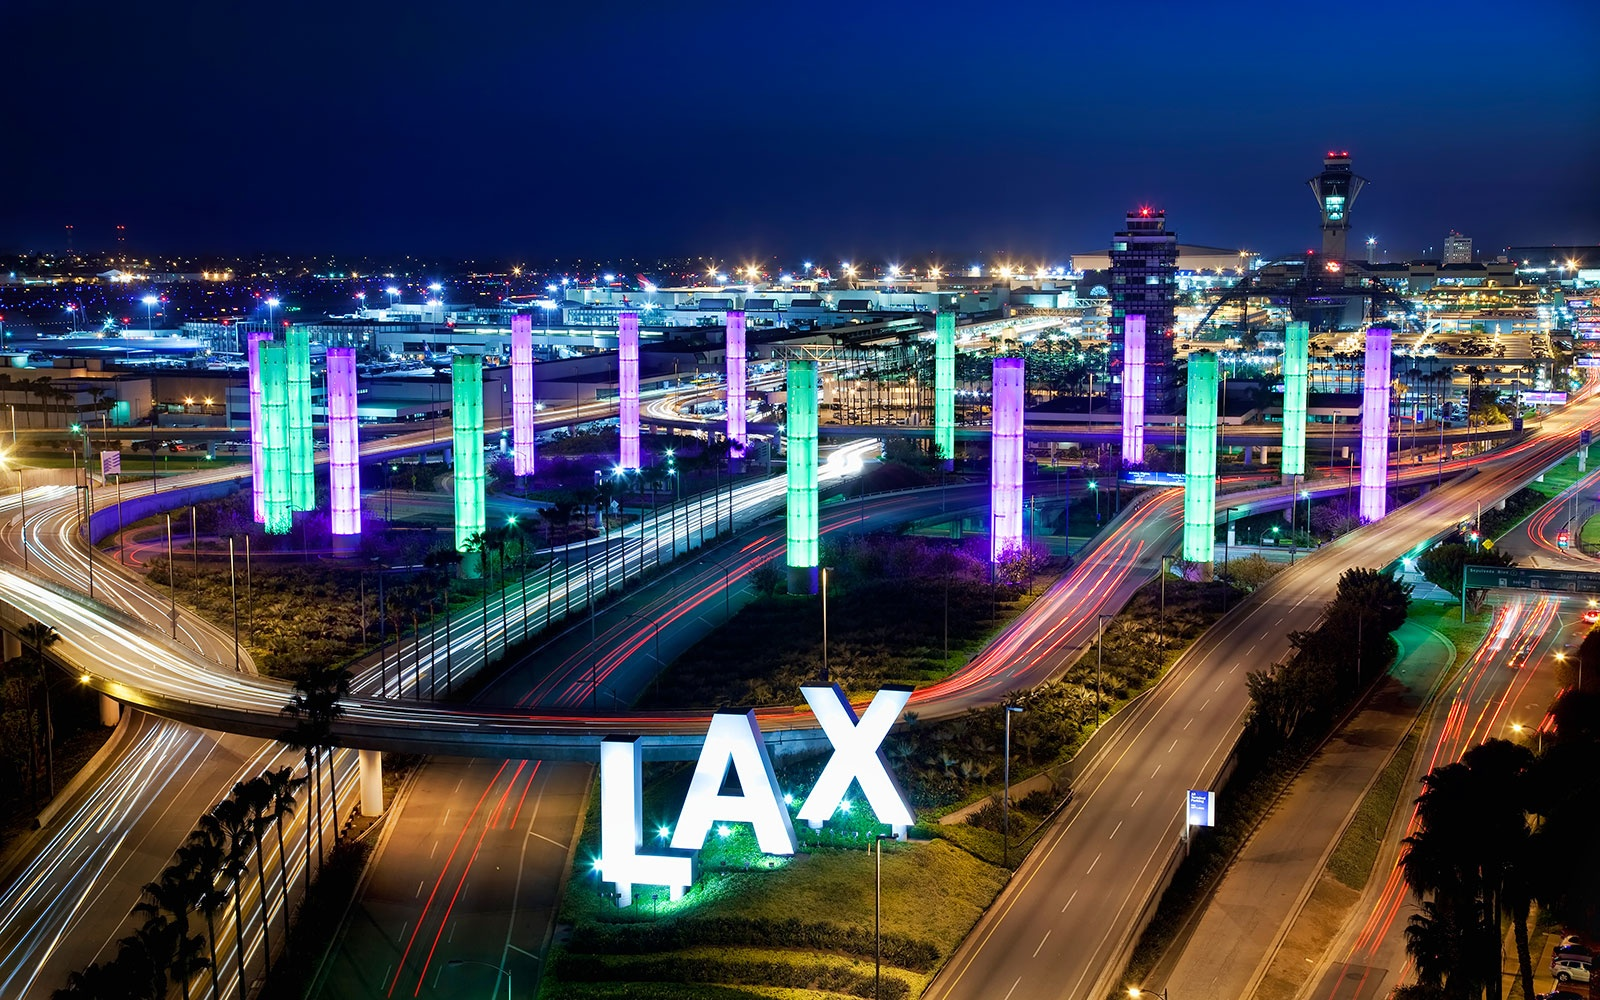 No. 2 Los Angeles (LAX)